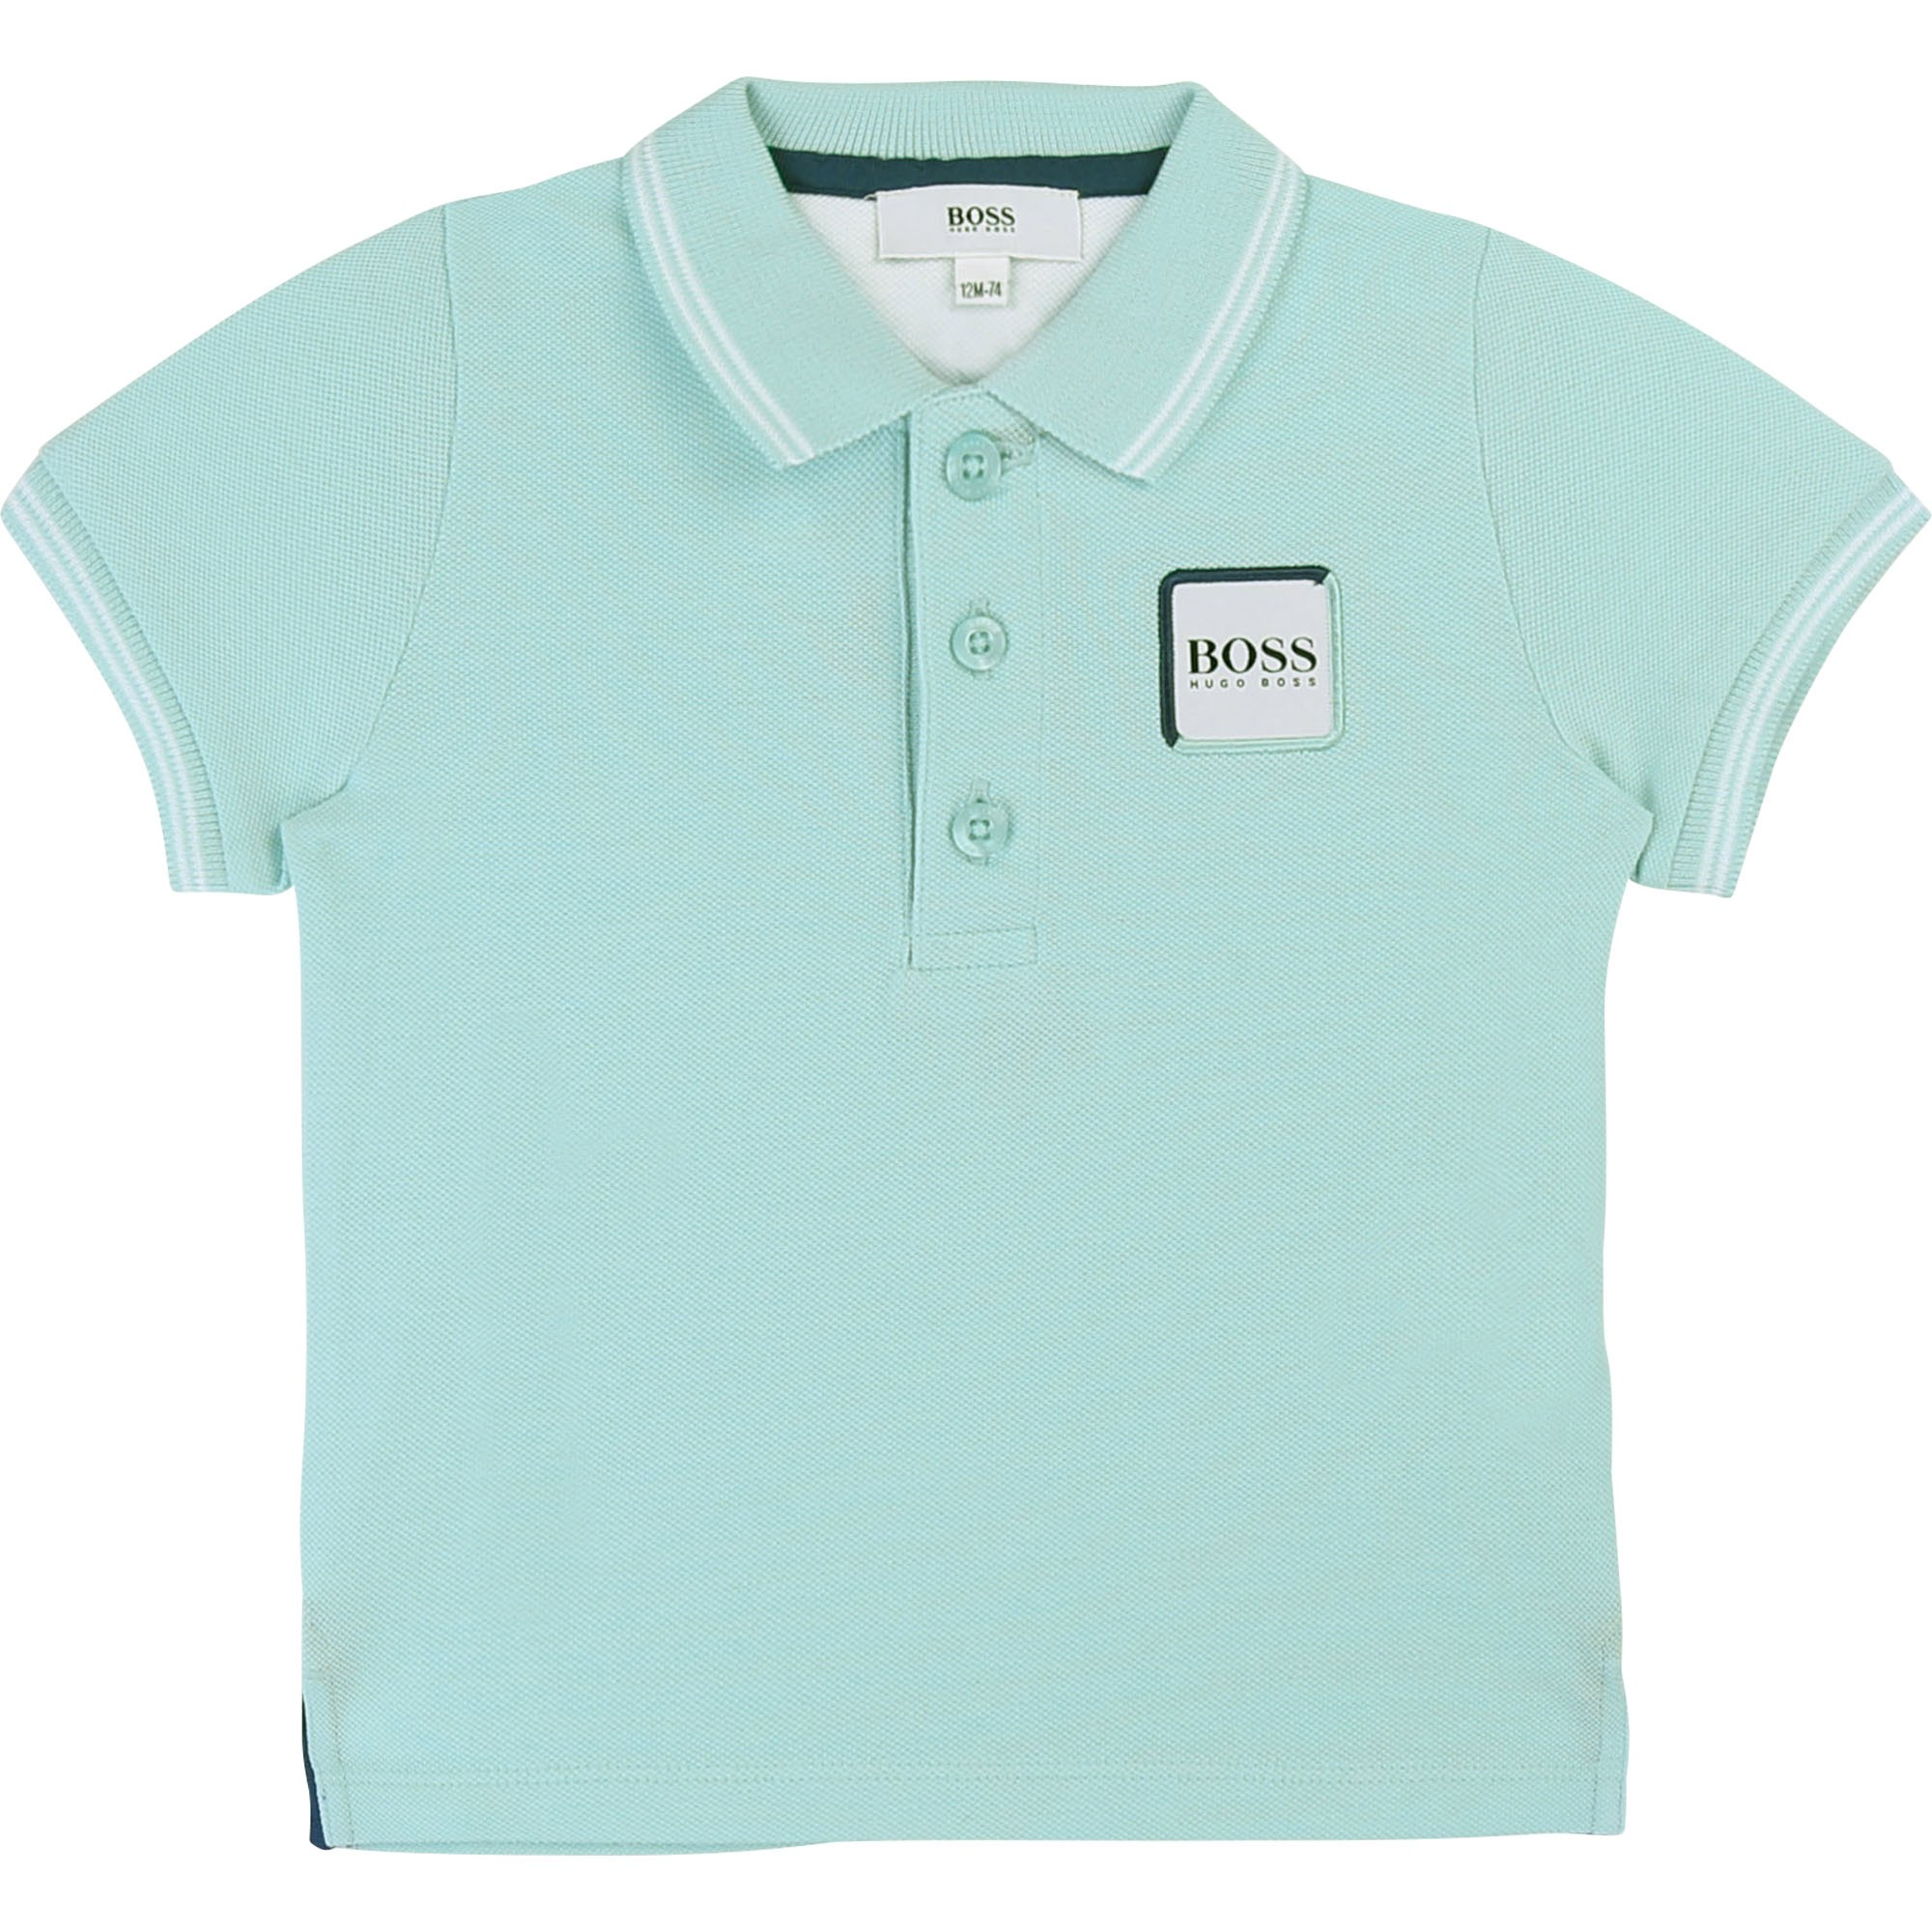 8ec2729a4 BOSS SHORT SLEEVE POLO baby blue - | Kids around